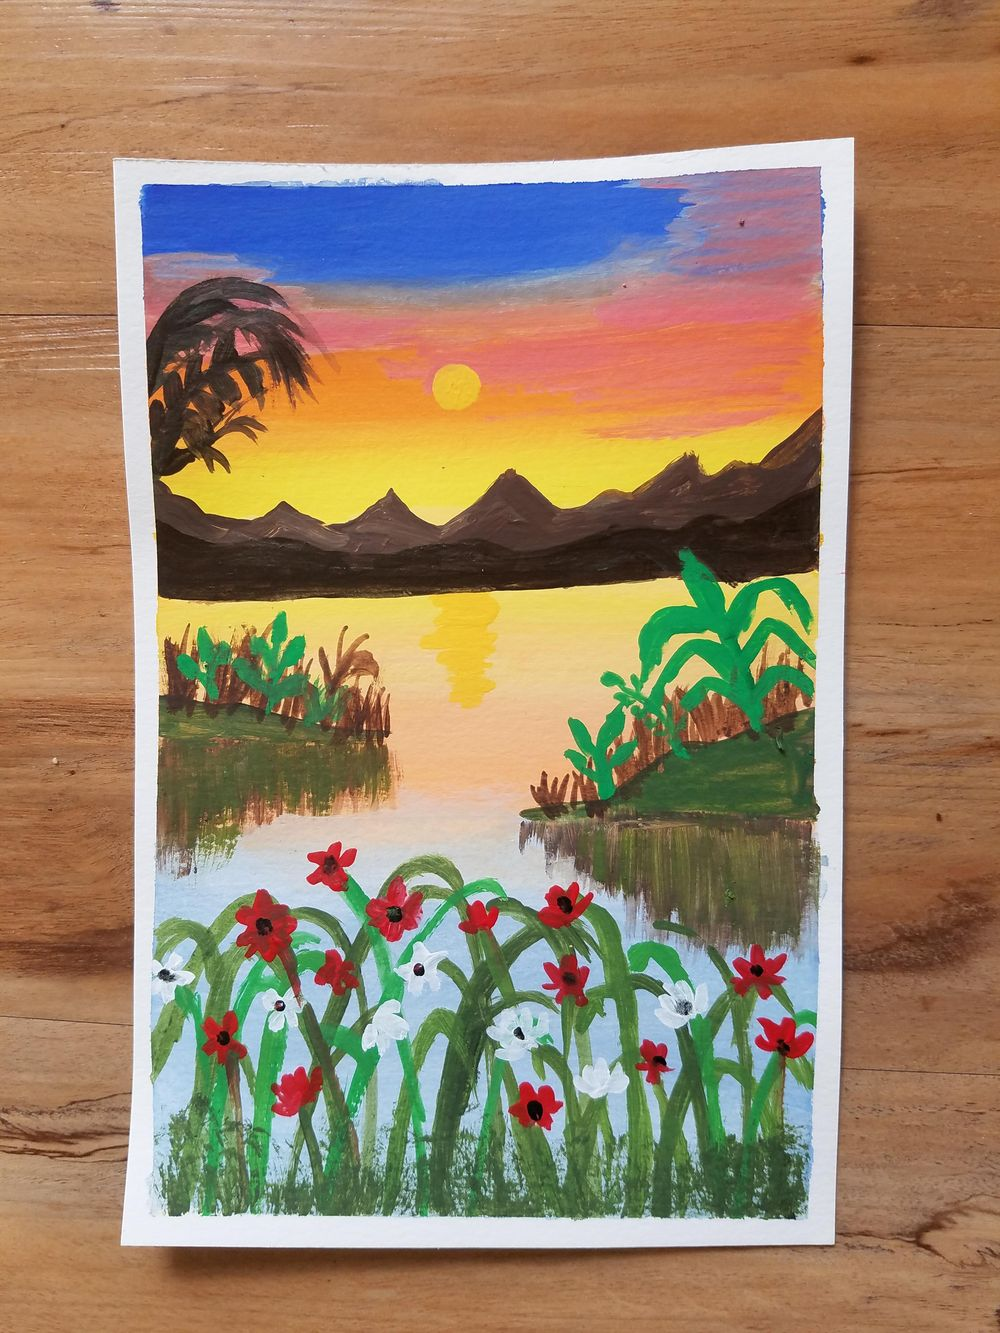 Sunset Painting - image 1 - student project